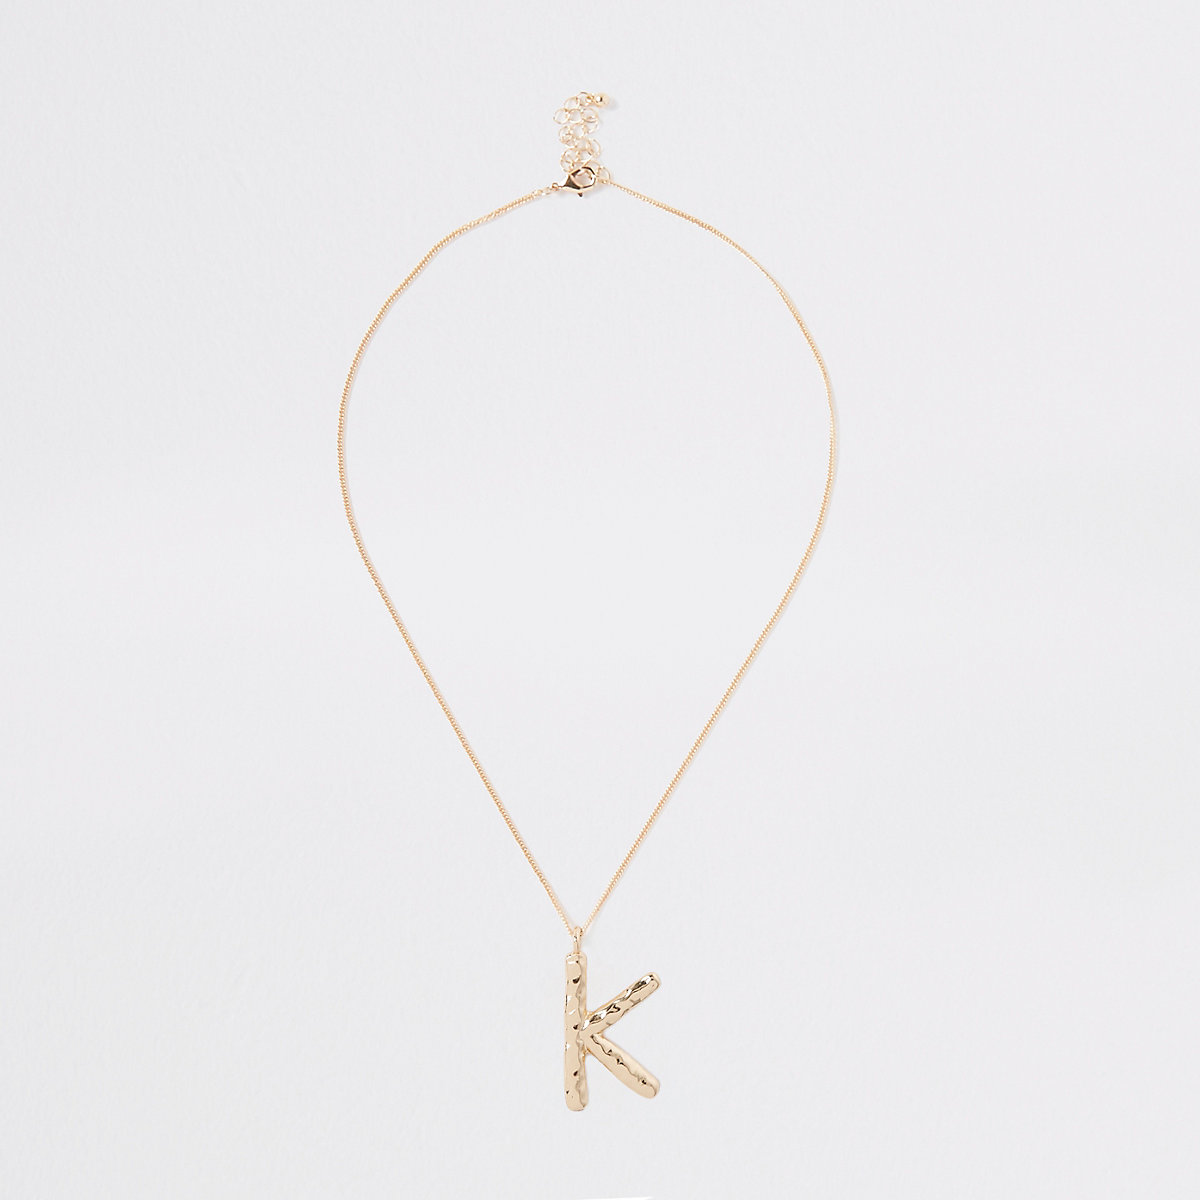 Gold color large initial 'K' necklace